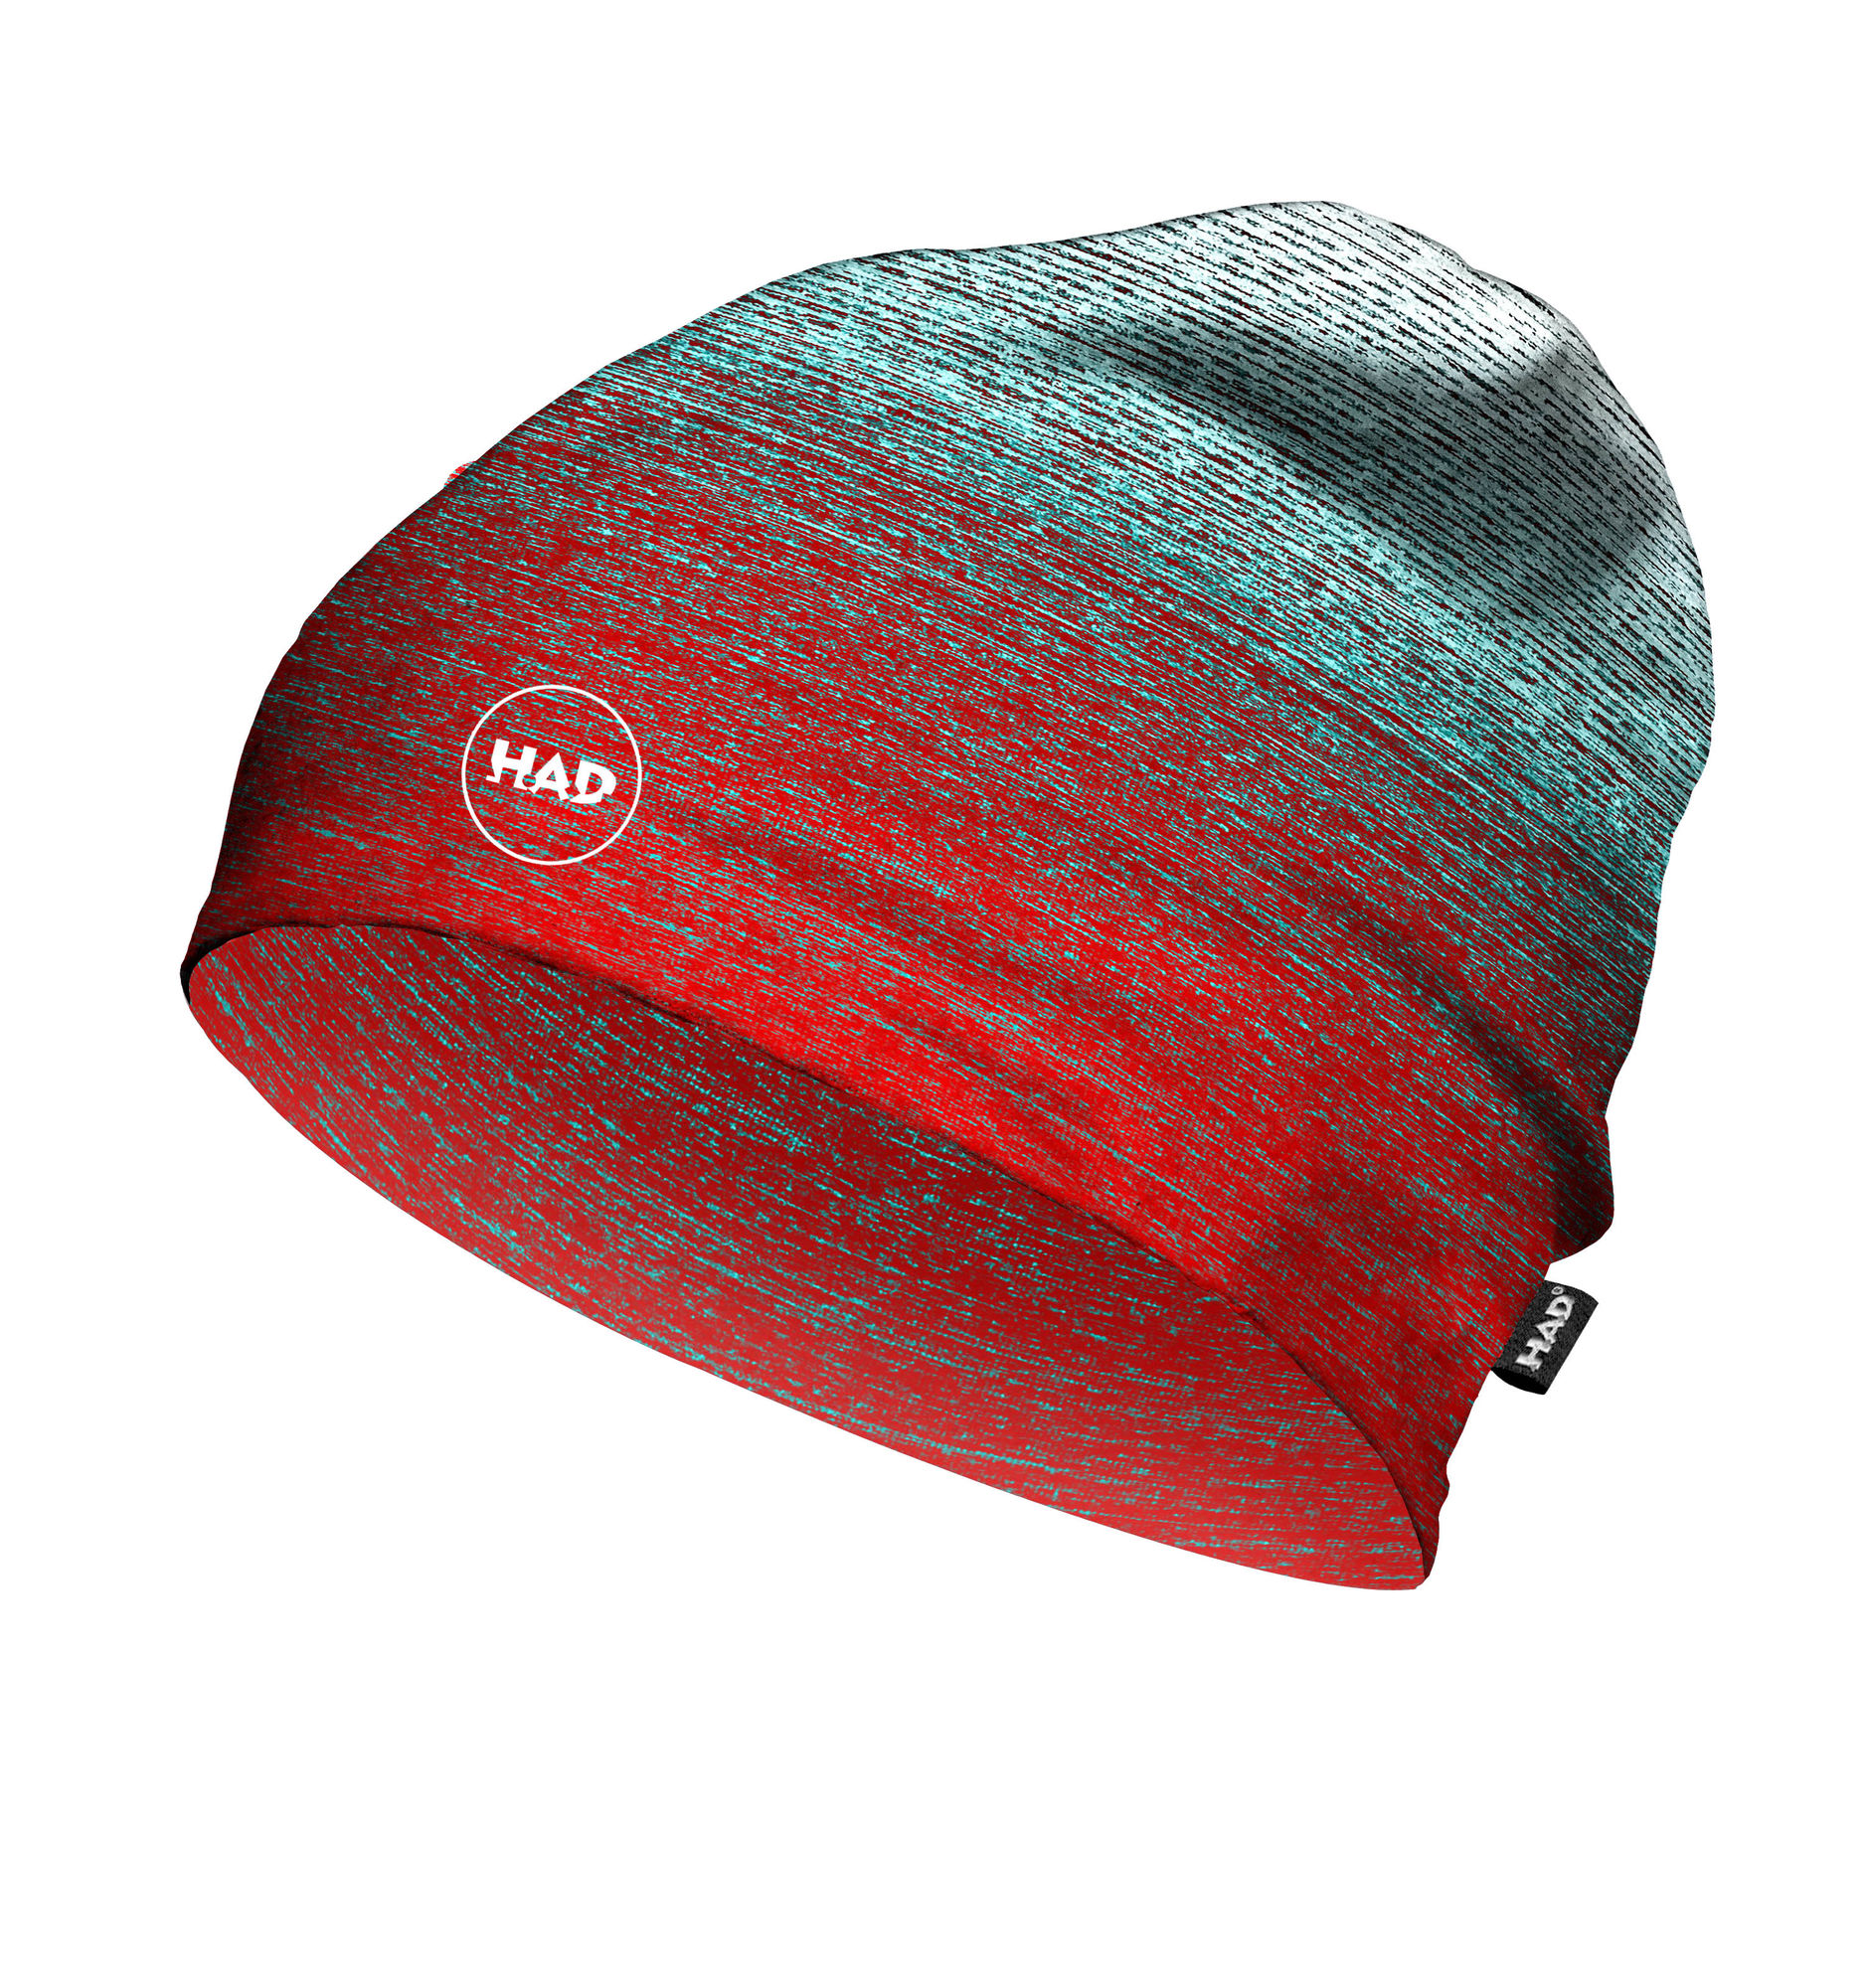 ProFeet HAD Printed Fleece Beanie in Gradient Melange Redblue